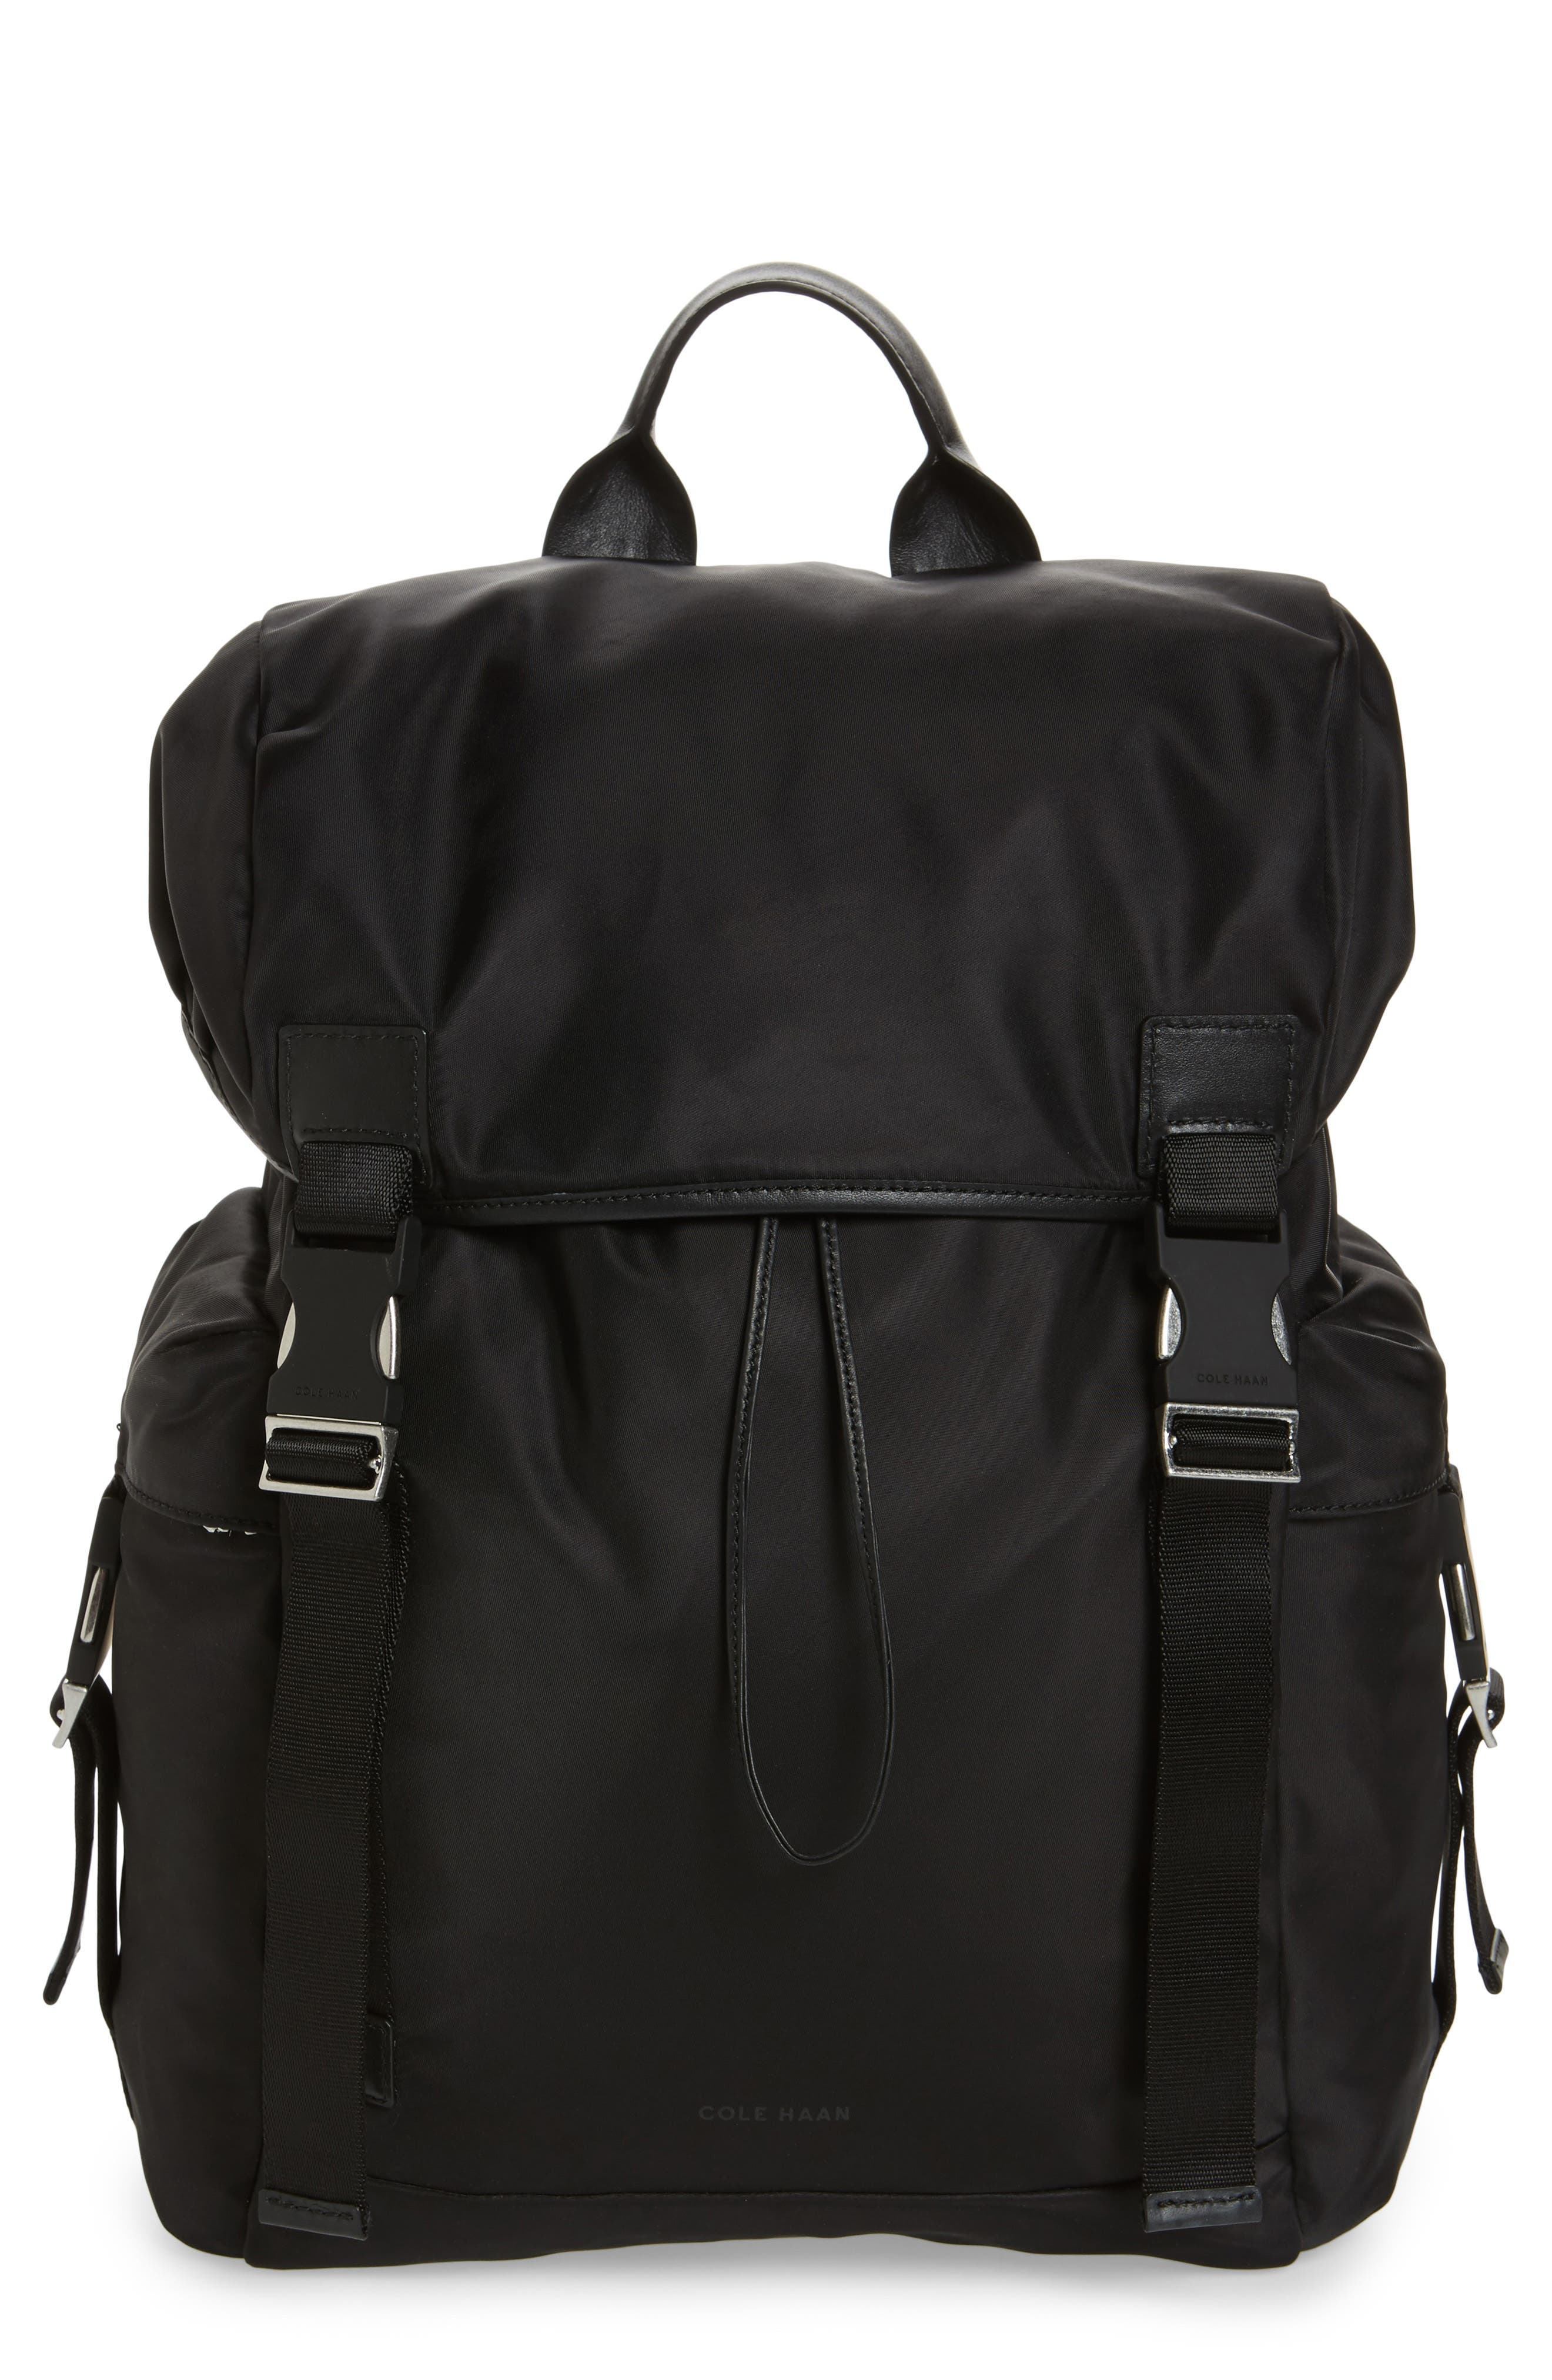 City Backpack,                         Main,                         color, 001